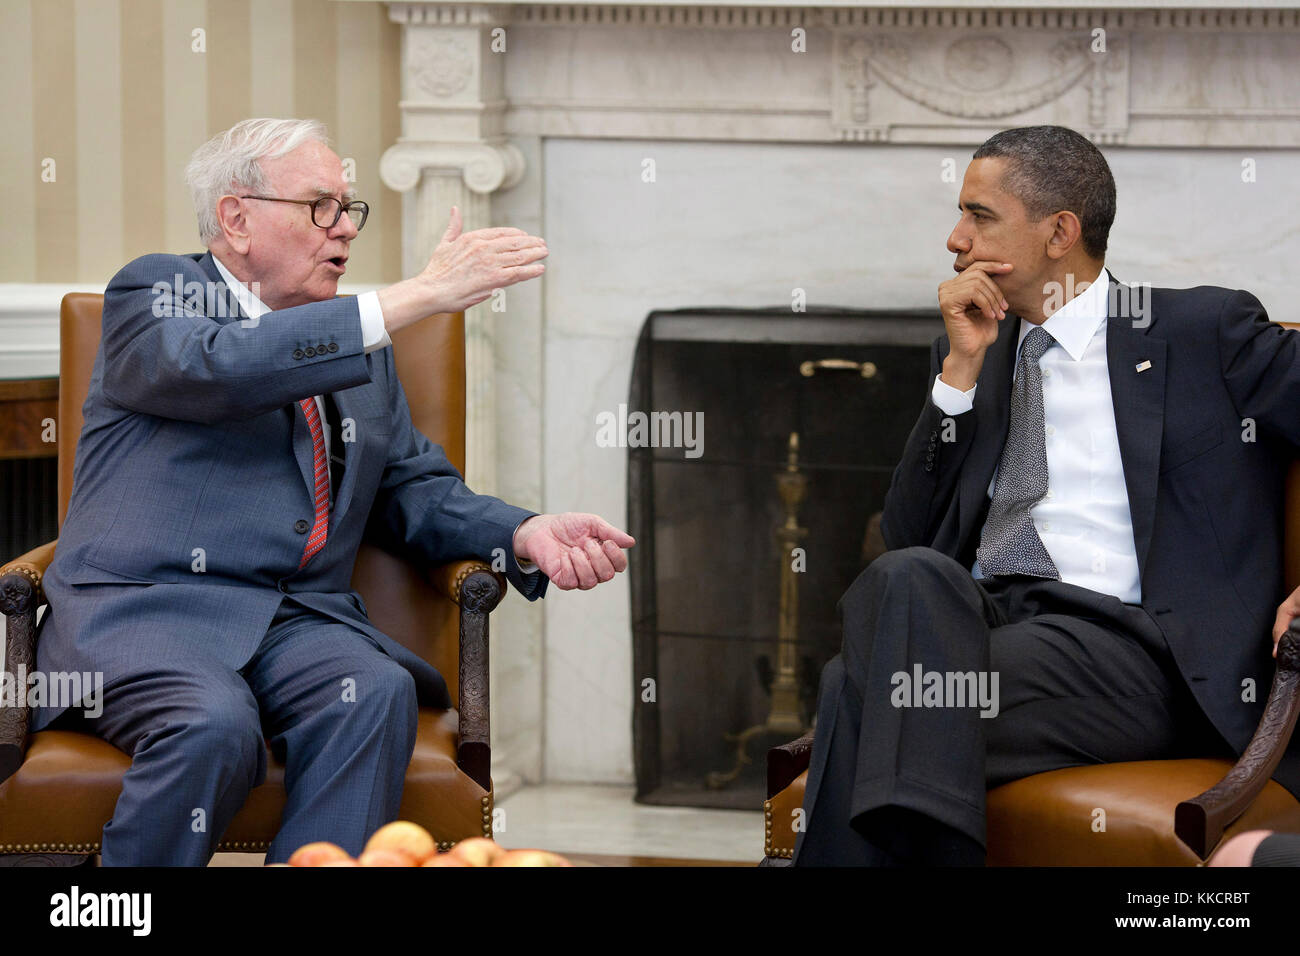 President Barack Obama meets with Warren Buffett, the Chairman of Berkshire Hathaway, in the Oval Office, July 18, Stock Photo